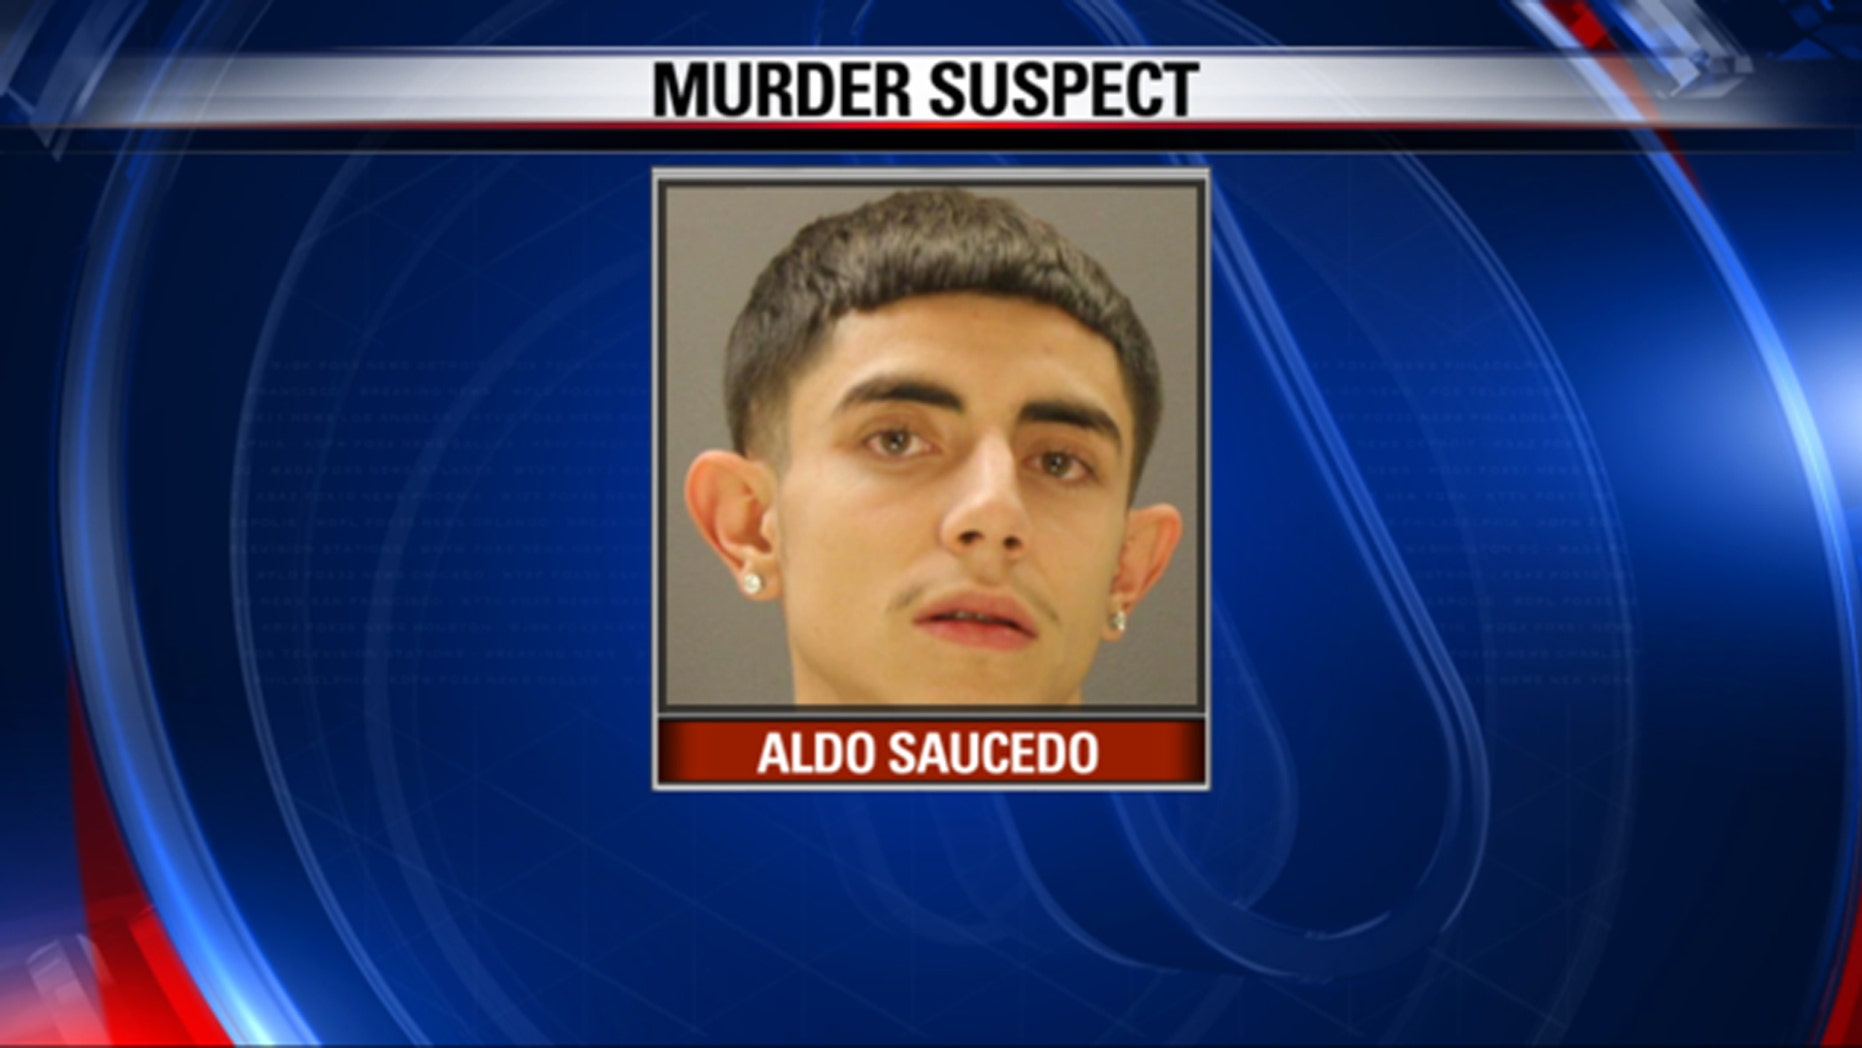 Police say 19-year-old Aldo Saucedo accidentally shot his girlfriend, 18-year-old Natalie Tavares, after getting into a fight outside a Dallas strip club.